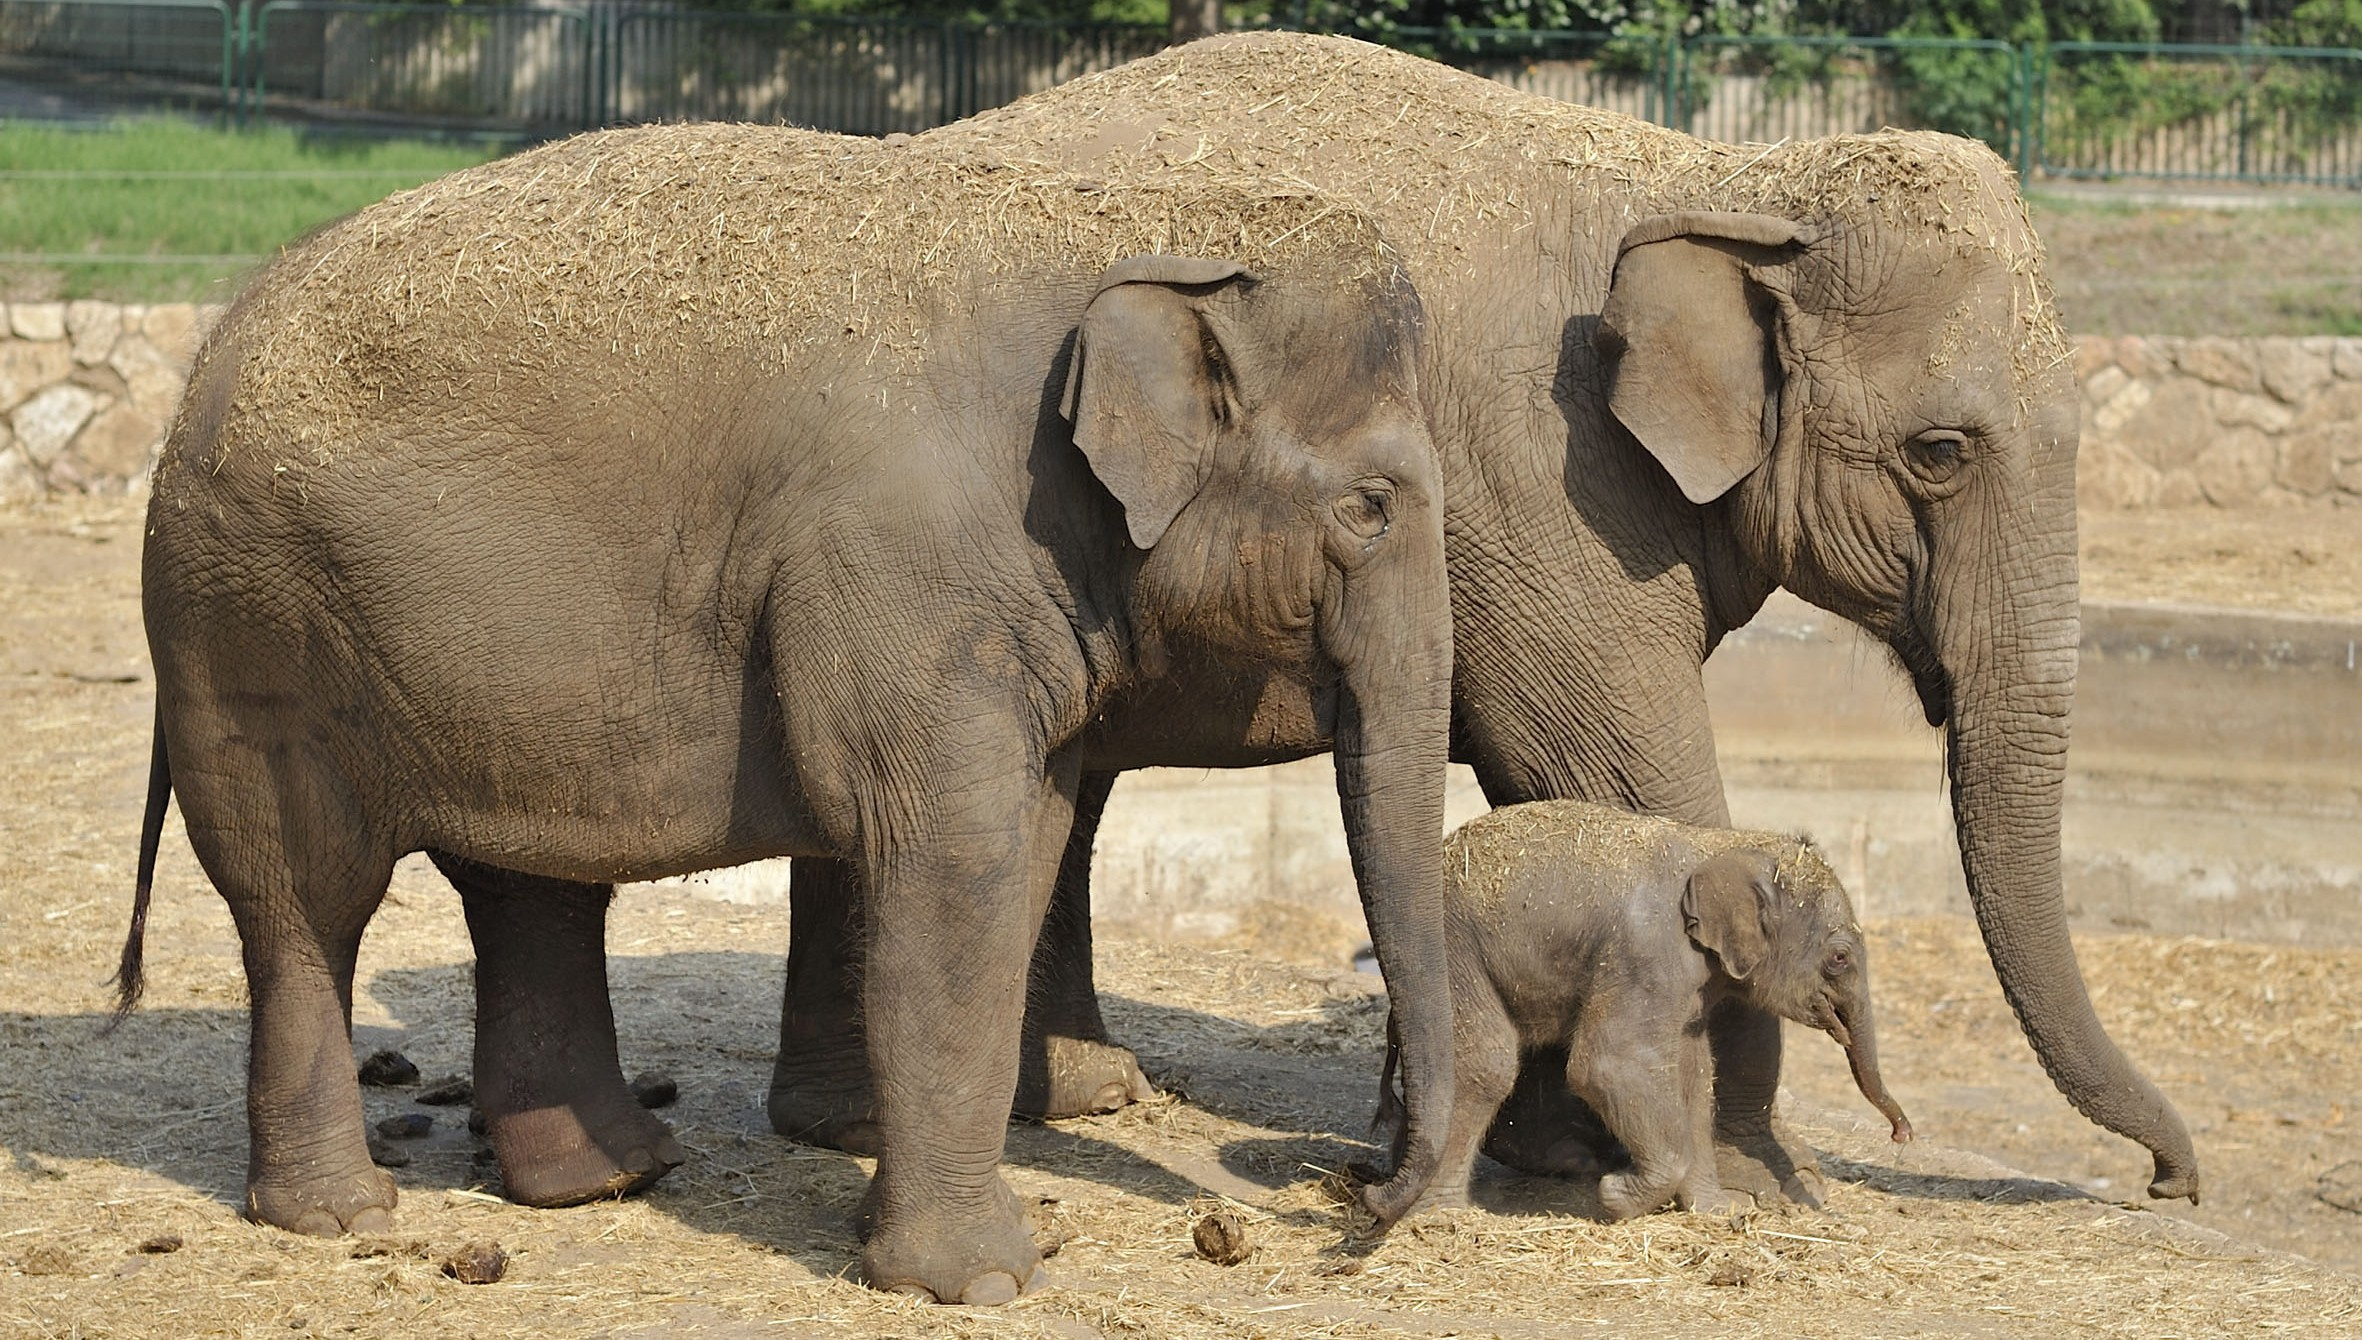 Watch elephants protect young during air raid siren ...